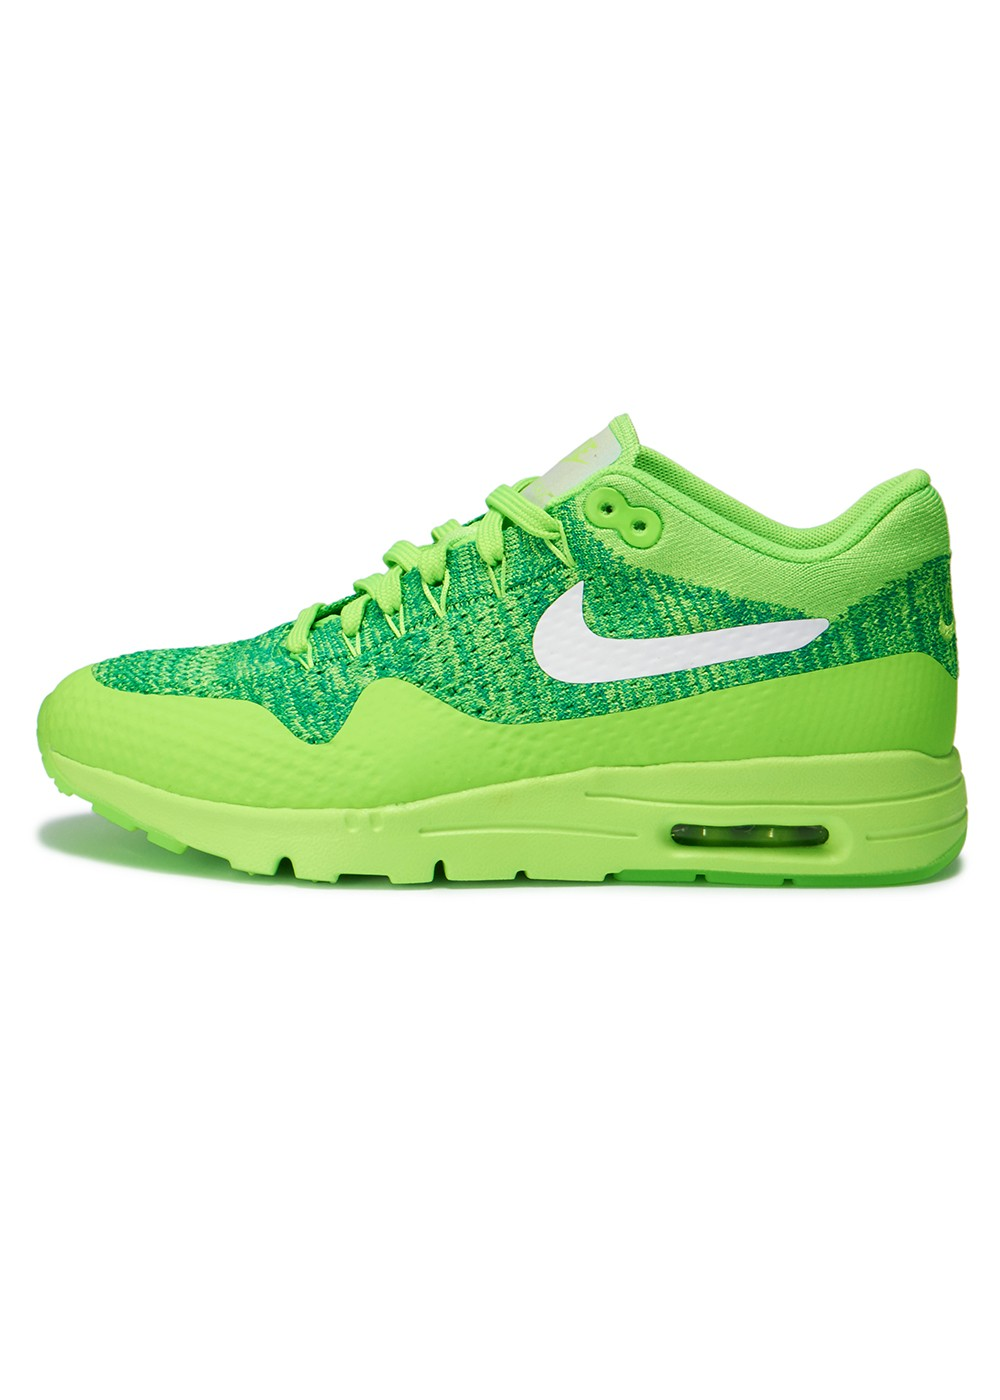 【NIKE】WMNS AIR MAX 1 ULTRA FLYKNIT 843387-301|GREEN|スニーカー|Styles